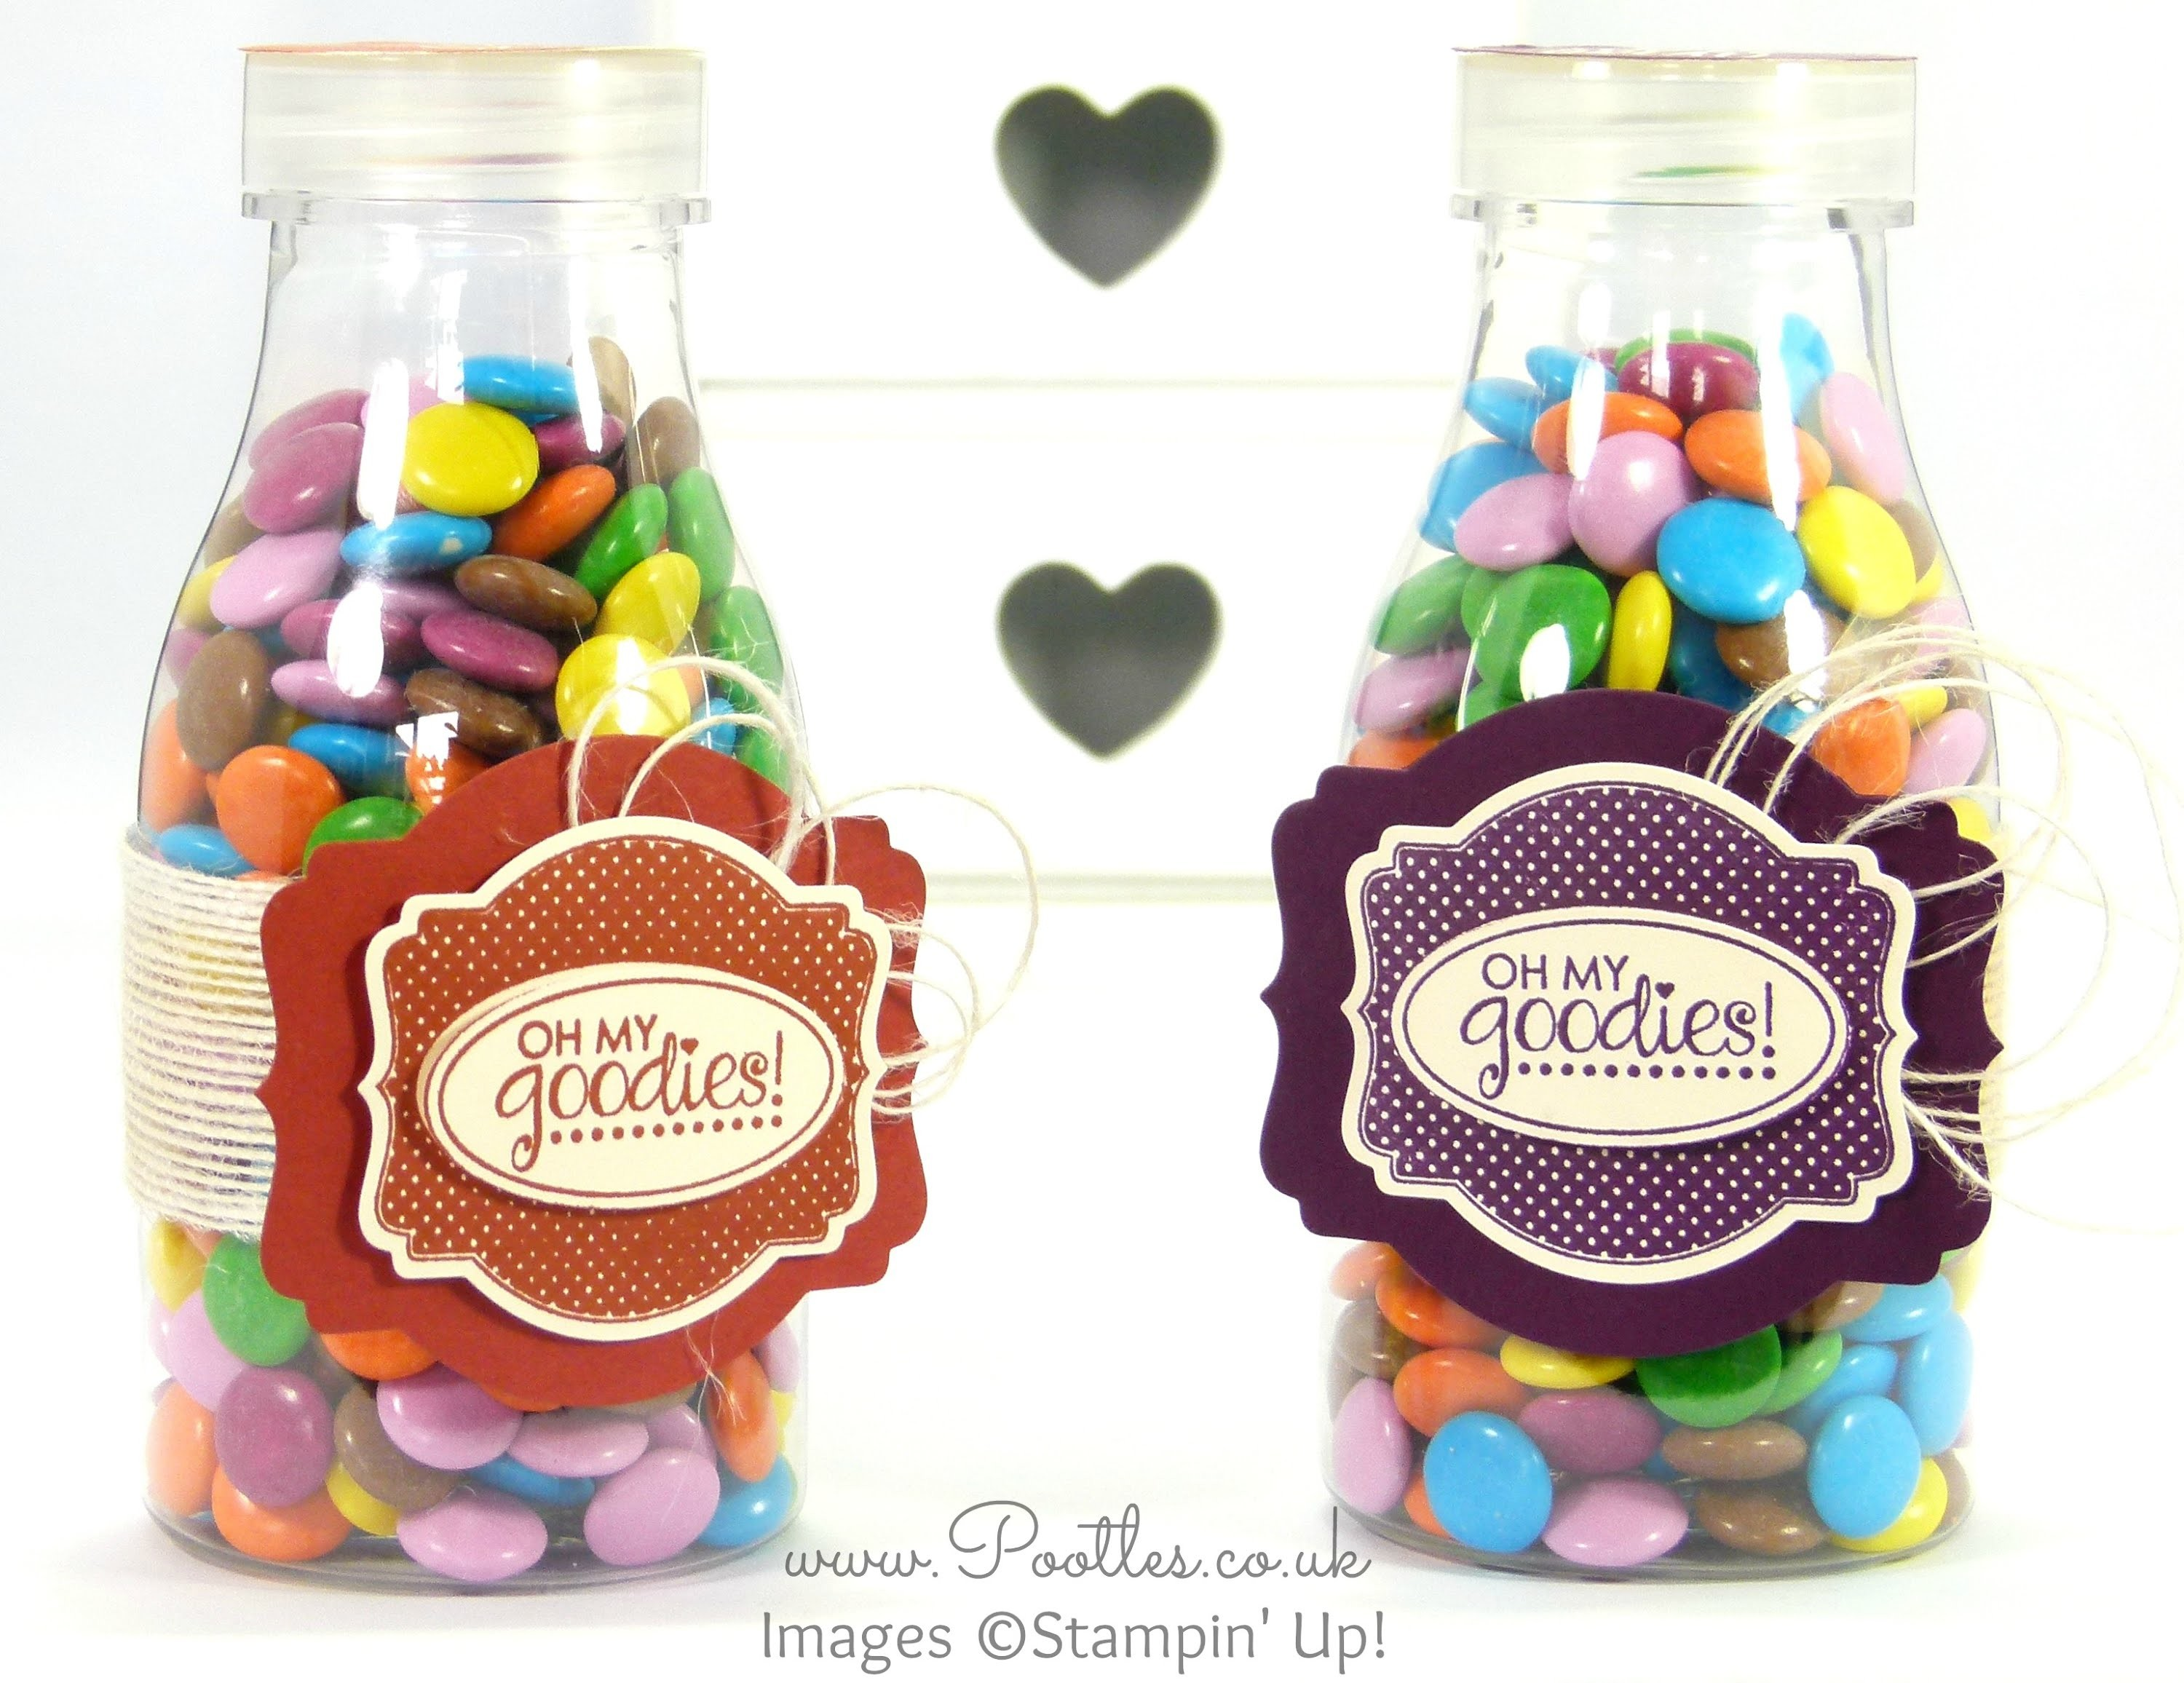 Stampin Up! Father's Day Sweetie Bottle Gift with Deco Labels